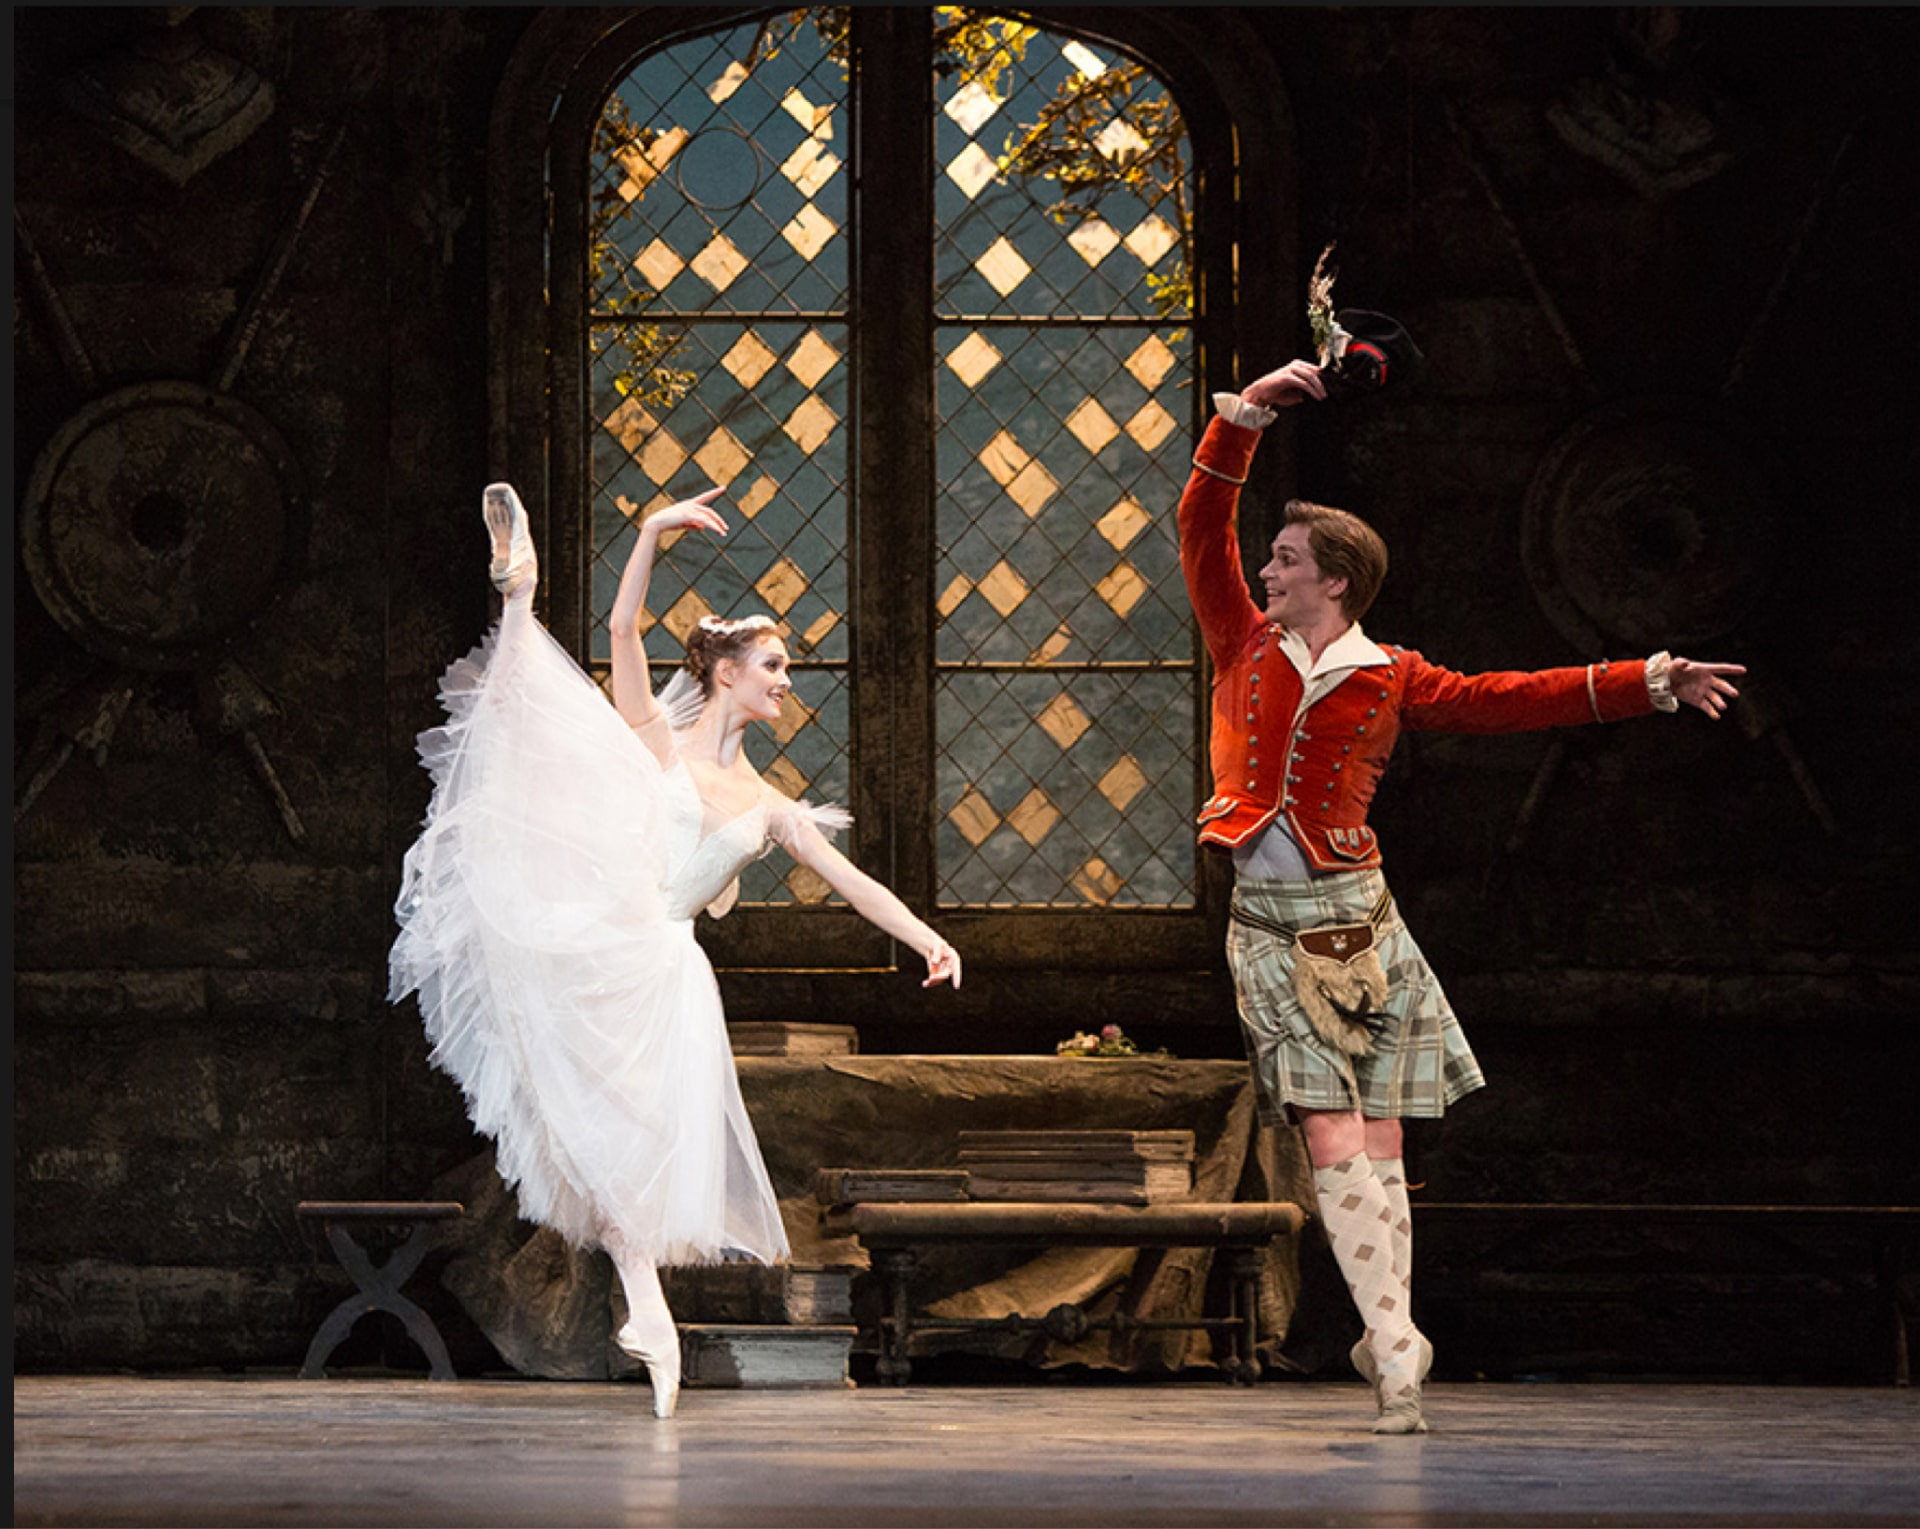 Ballerina in white dress leaps on point beside dancer in kilt and red jacket in front of paned window.